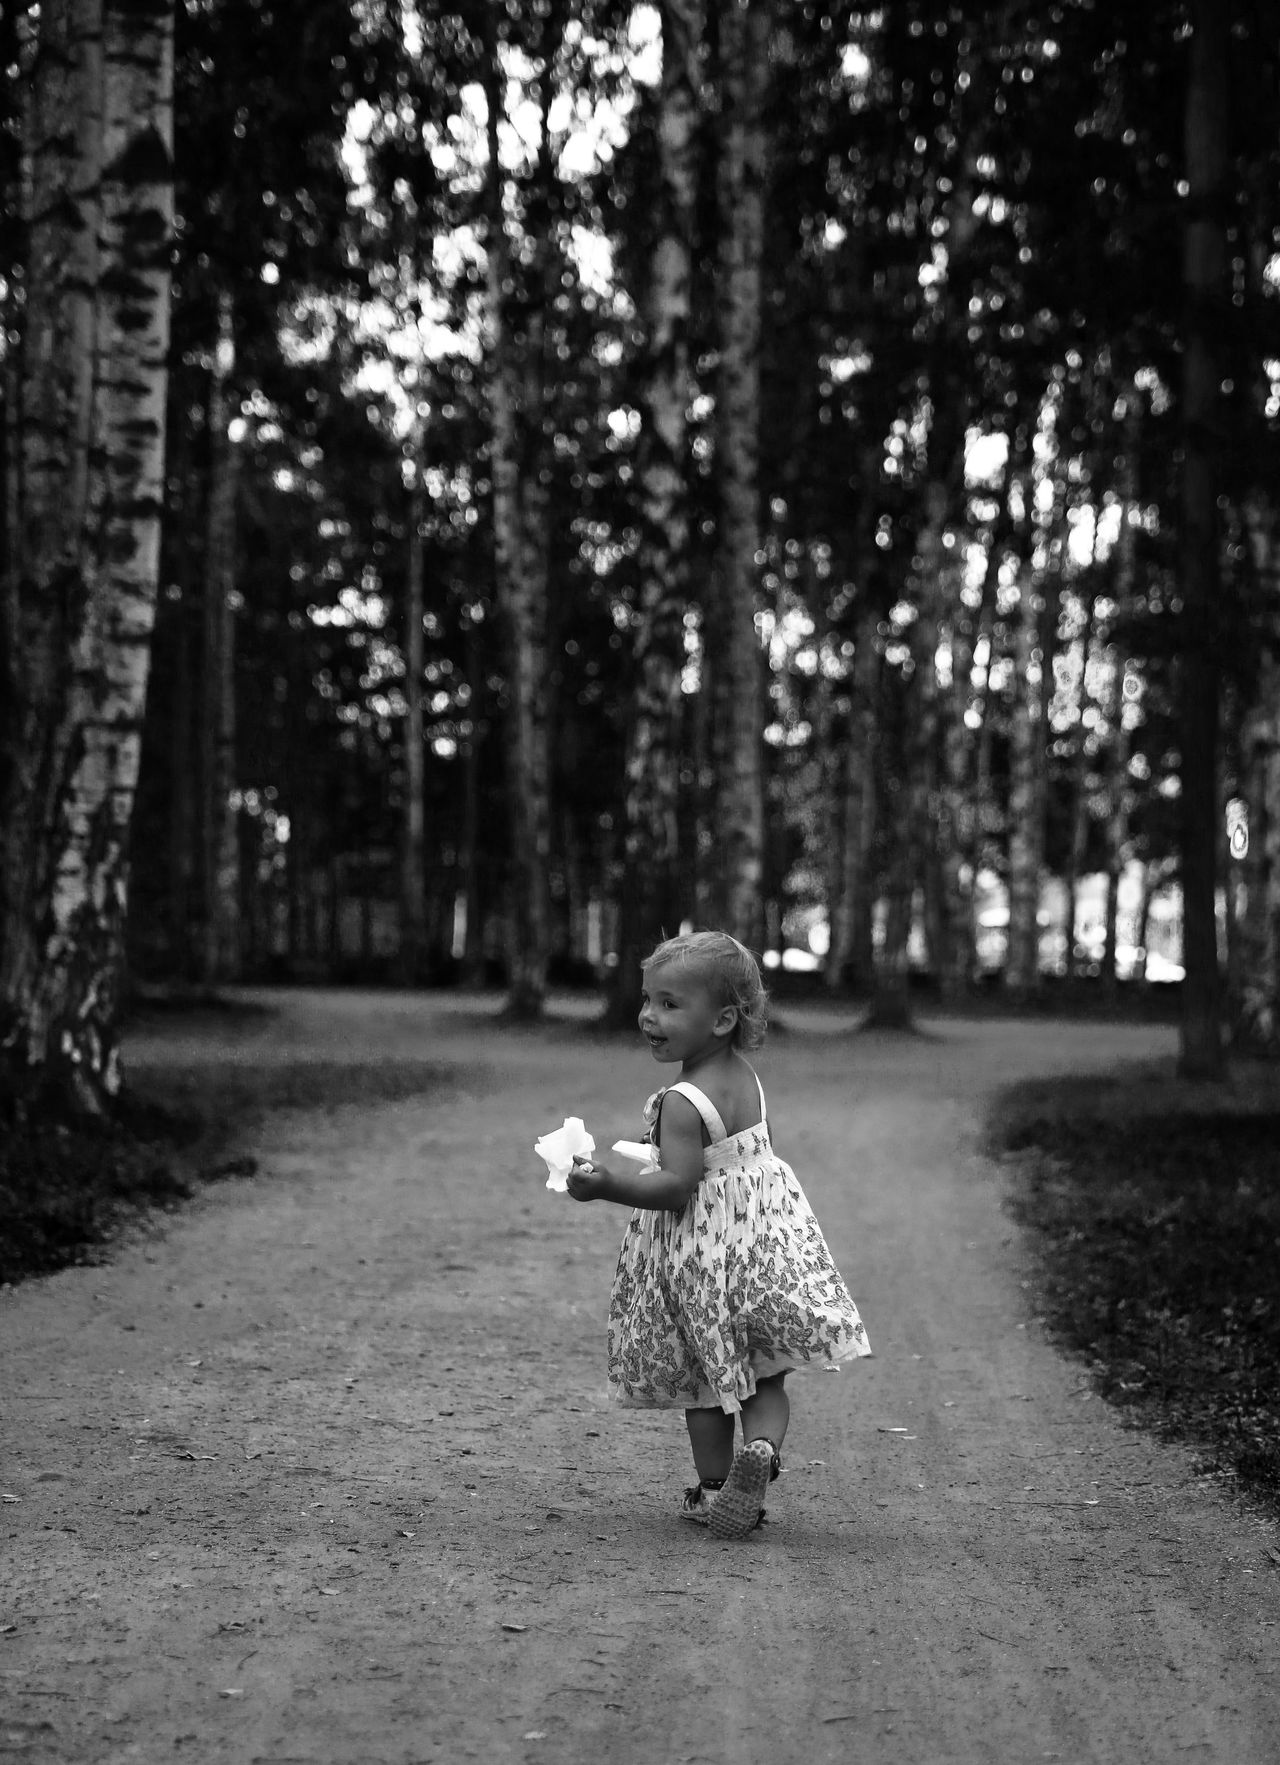 Black and white photos of baby girl playing alone with ball and walking in the garden Alone Alone Time Ball Balloons Black And White Black And White Photography Blurred Motion Child Dreaming Enjoying Life Evening Eye Family# Flower Dress Free Girl Looking At Camera Memories One Person Playing Pretty Running